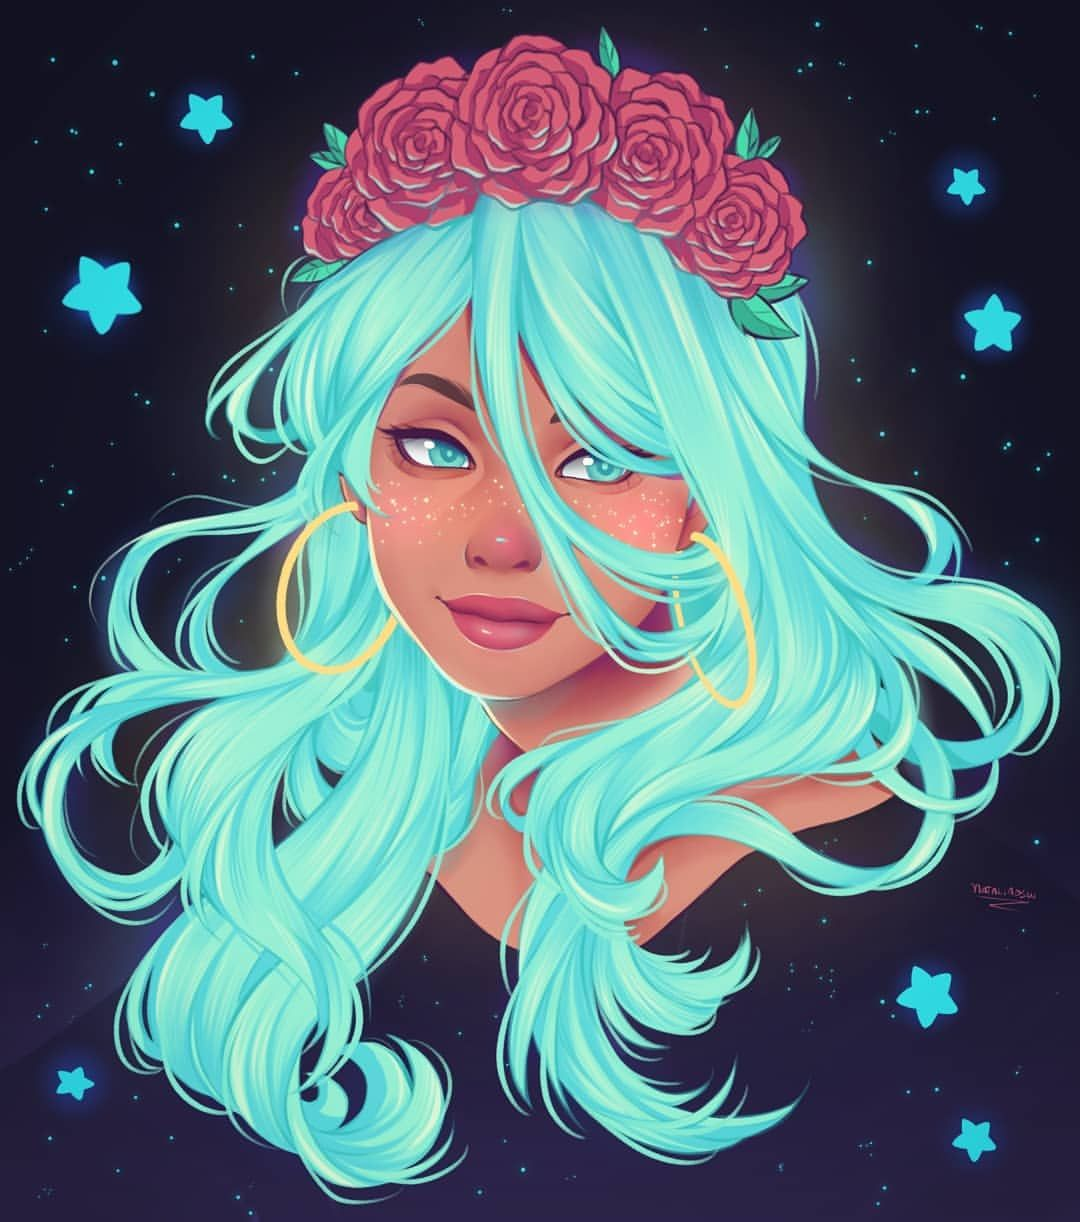 My Version For Nailustra S Drawthisinyourstyle I Know It S Very Different But I Wanted To Give T In 2020 Girls Cartoon Art Girly Art Concept Art Drawing